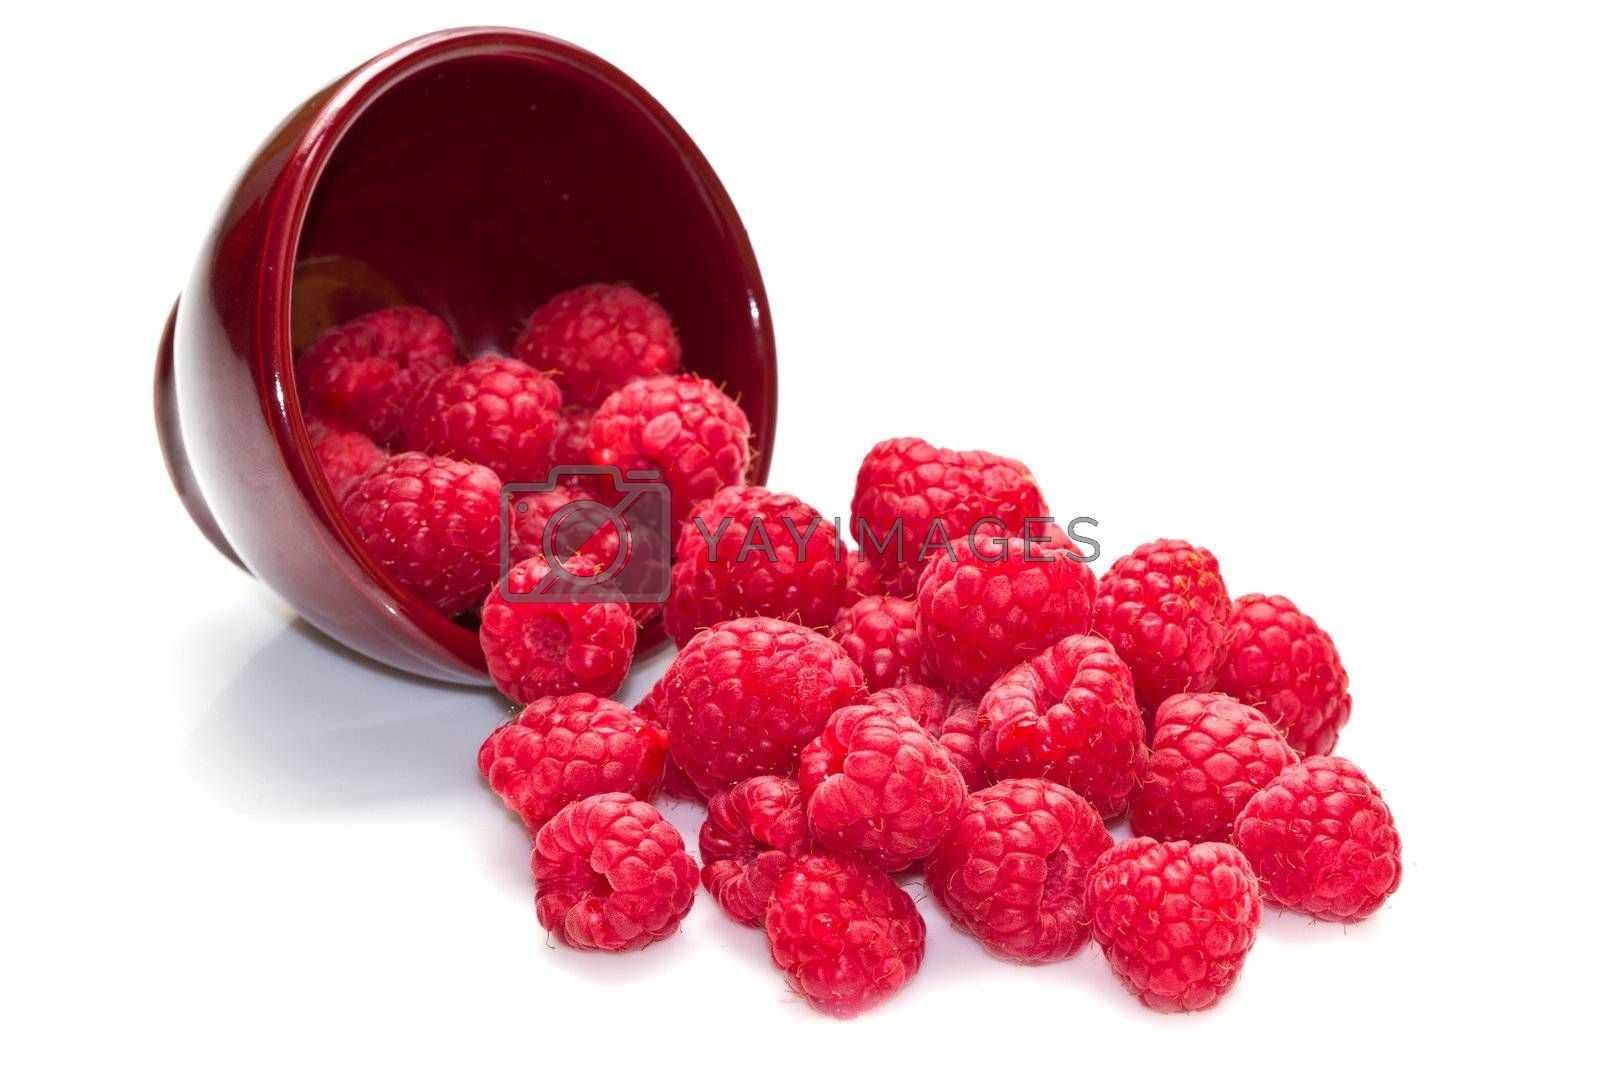 fresh raspberries scattered on white background